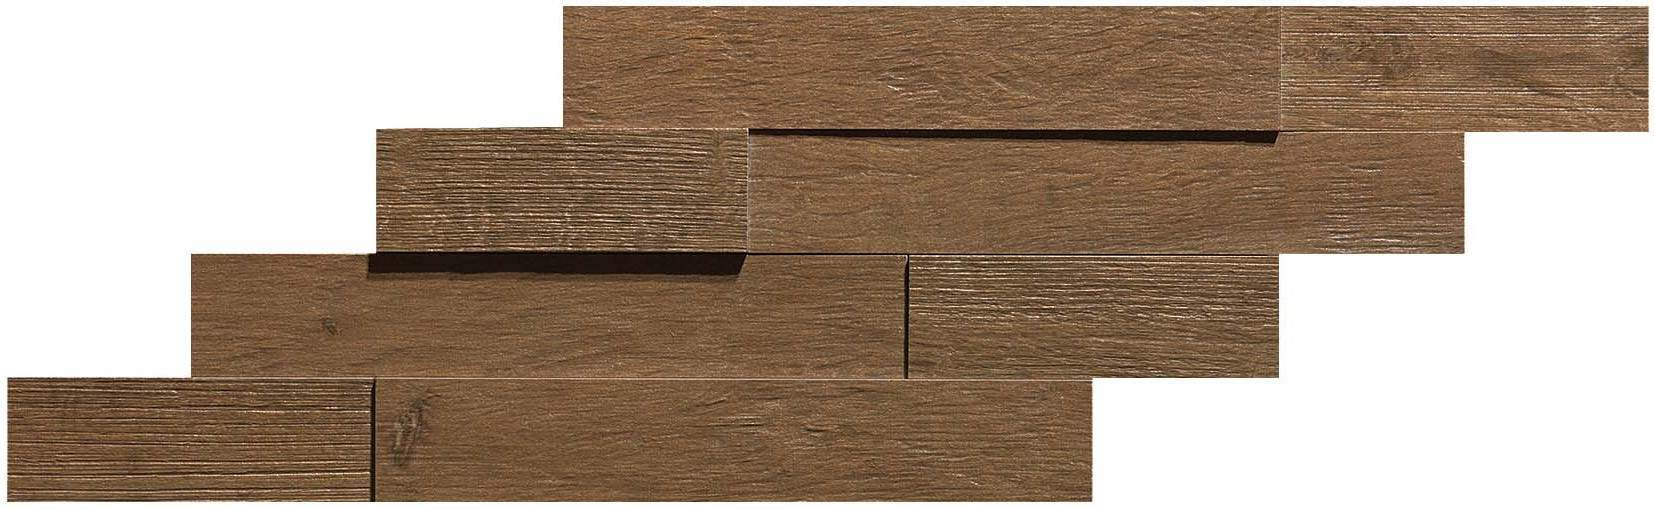 Axi Dark Oak Brick 3d